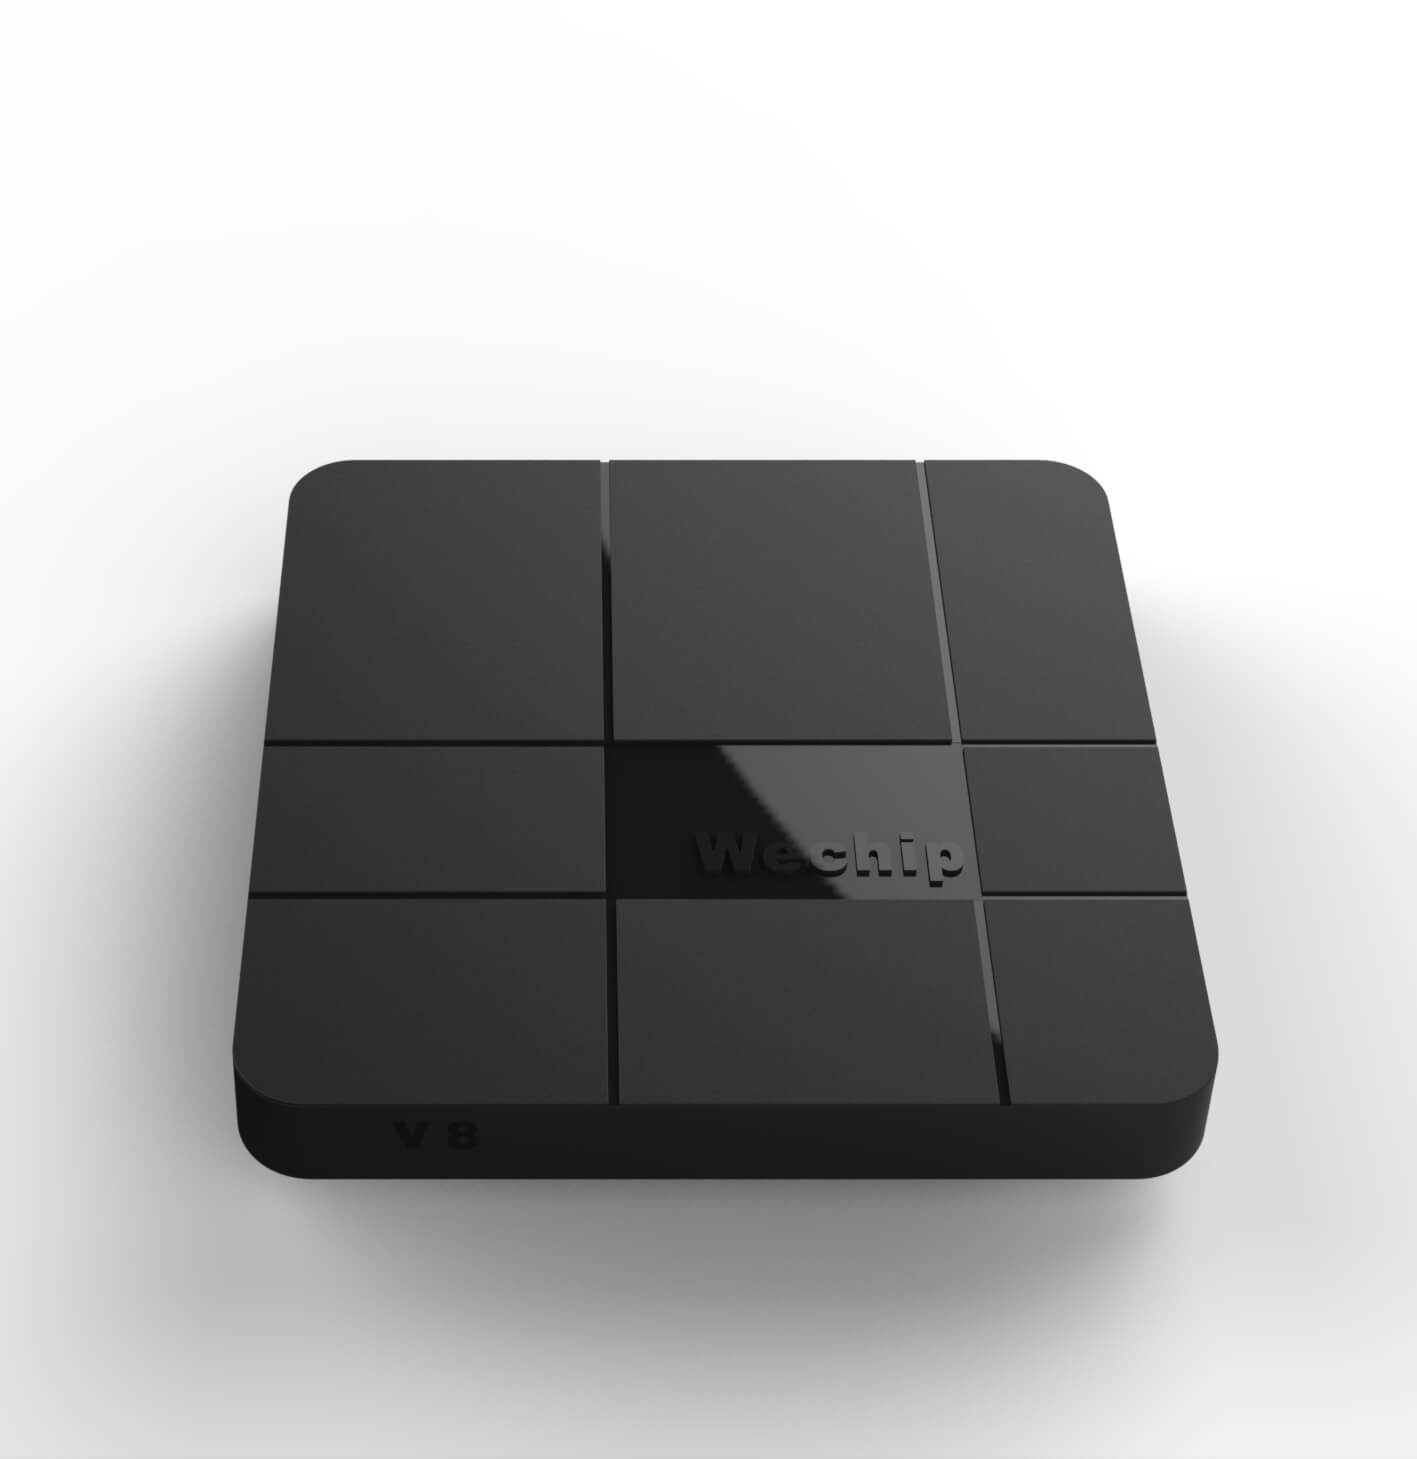 Lipa V8 Tv box